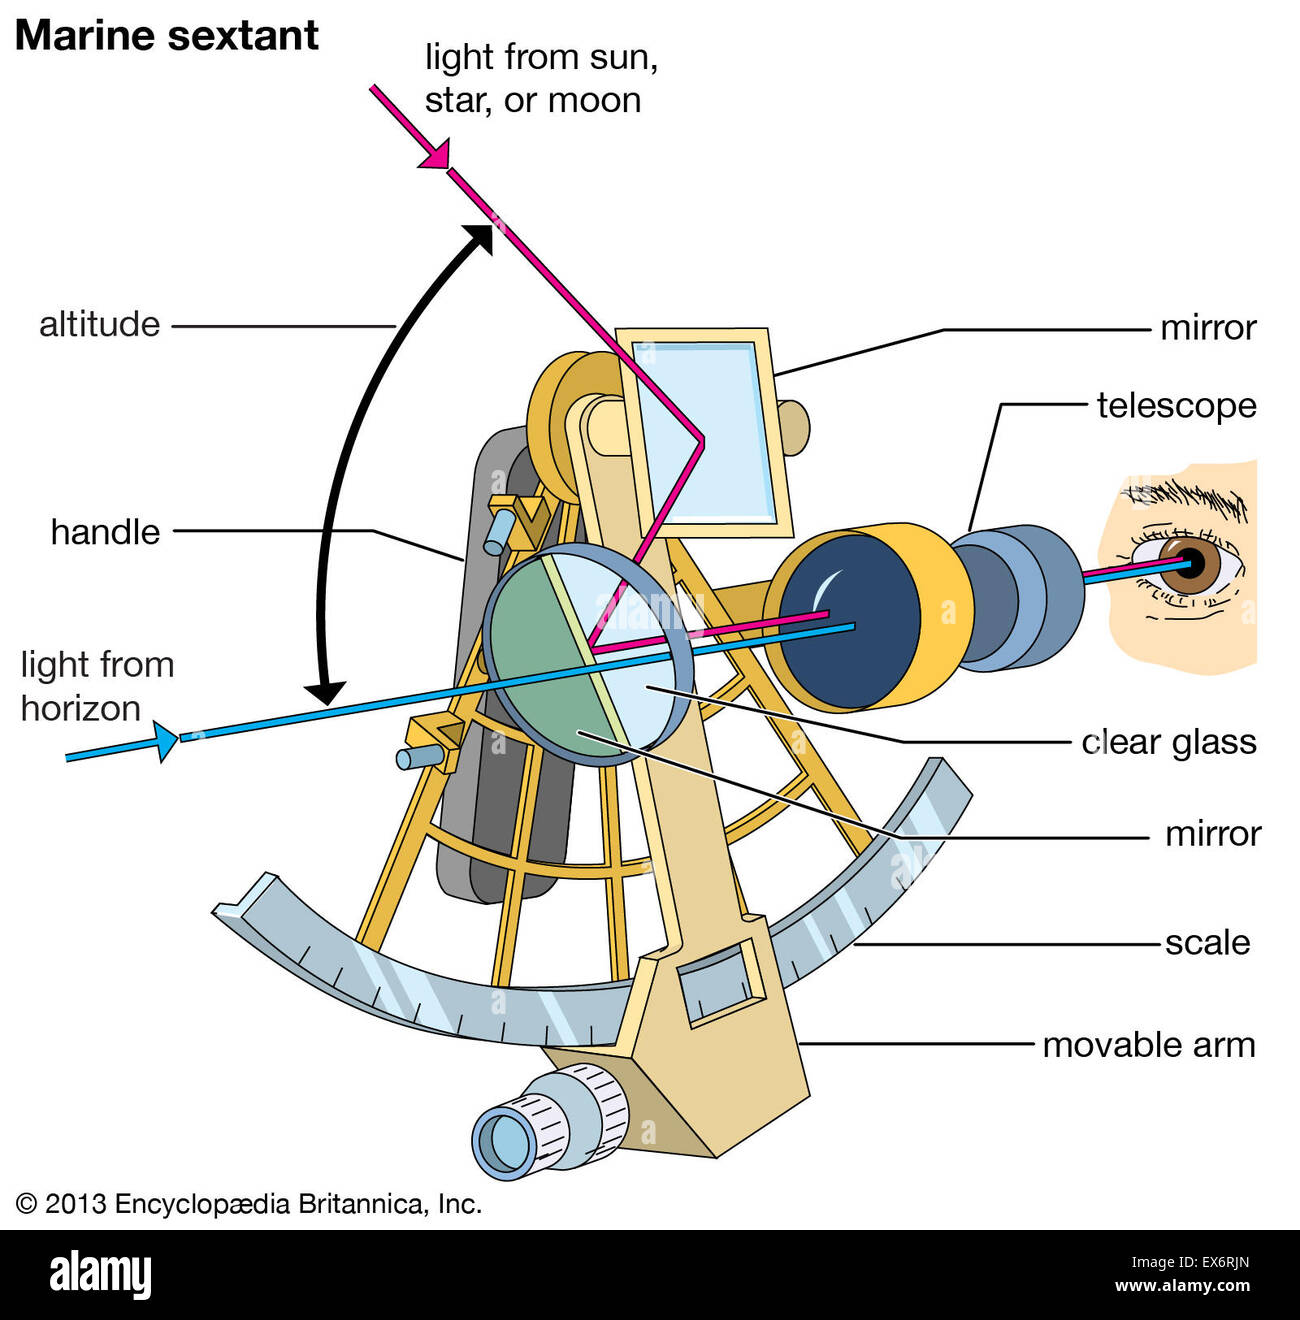 hight resolution of marine sextant stock photo